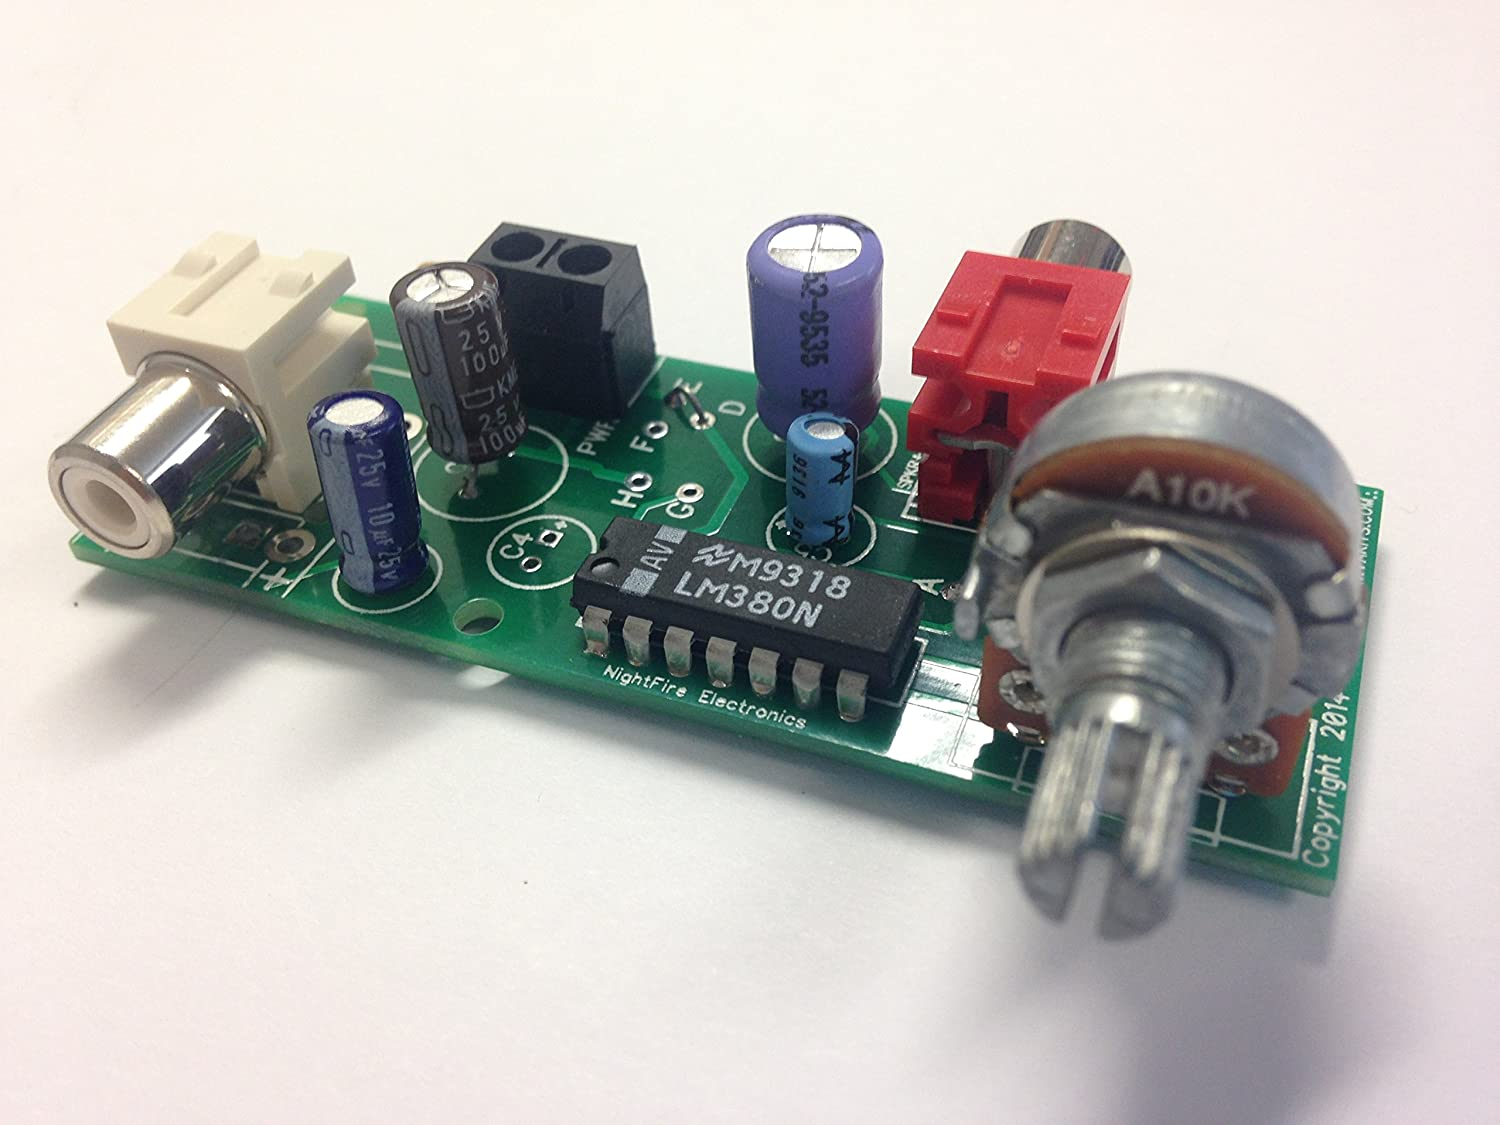 Buy 25 Watt Audio Amplifier Lm380 N 14 Kit 5316 Online At Low Circuit Was Constructed With The Use Of Power Prices In India